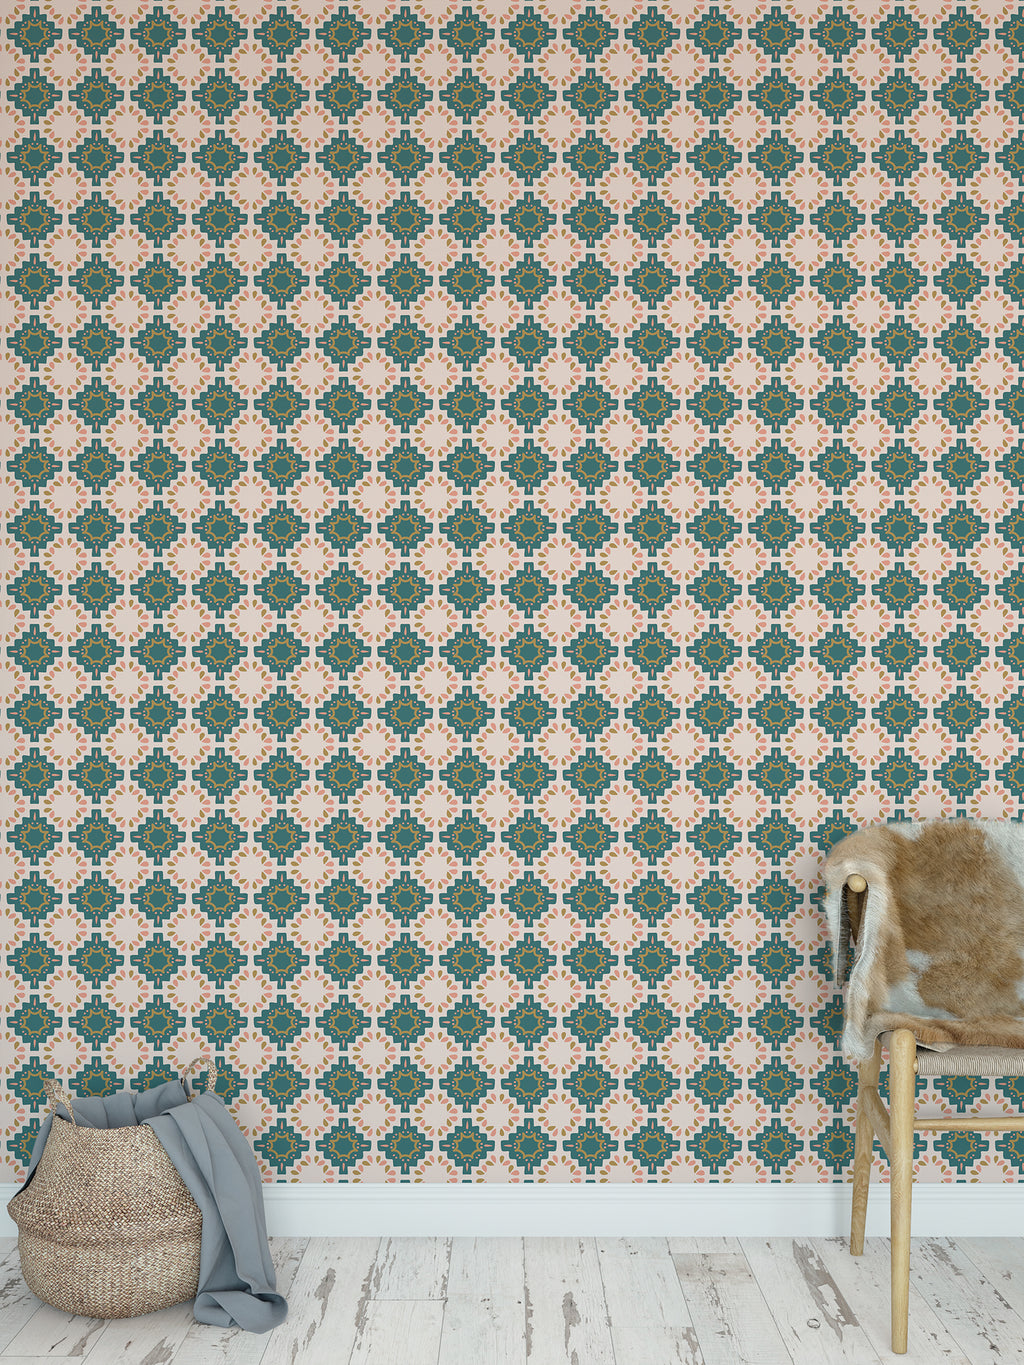 ESTRELLA JEWEL Peel and Stick Wallpaper By Tiffany Wong